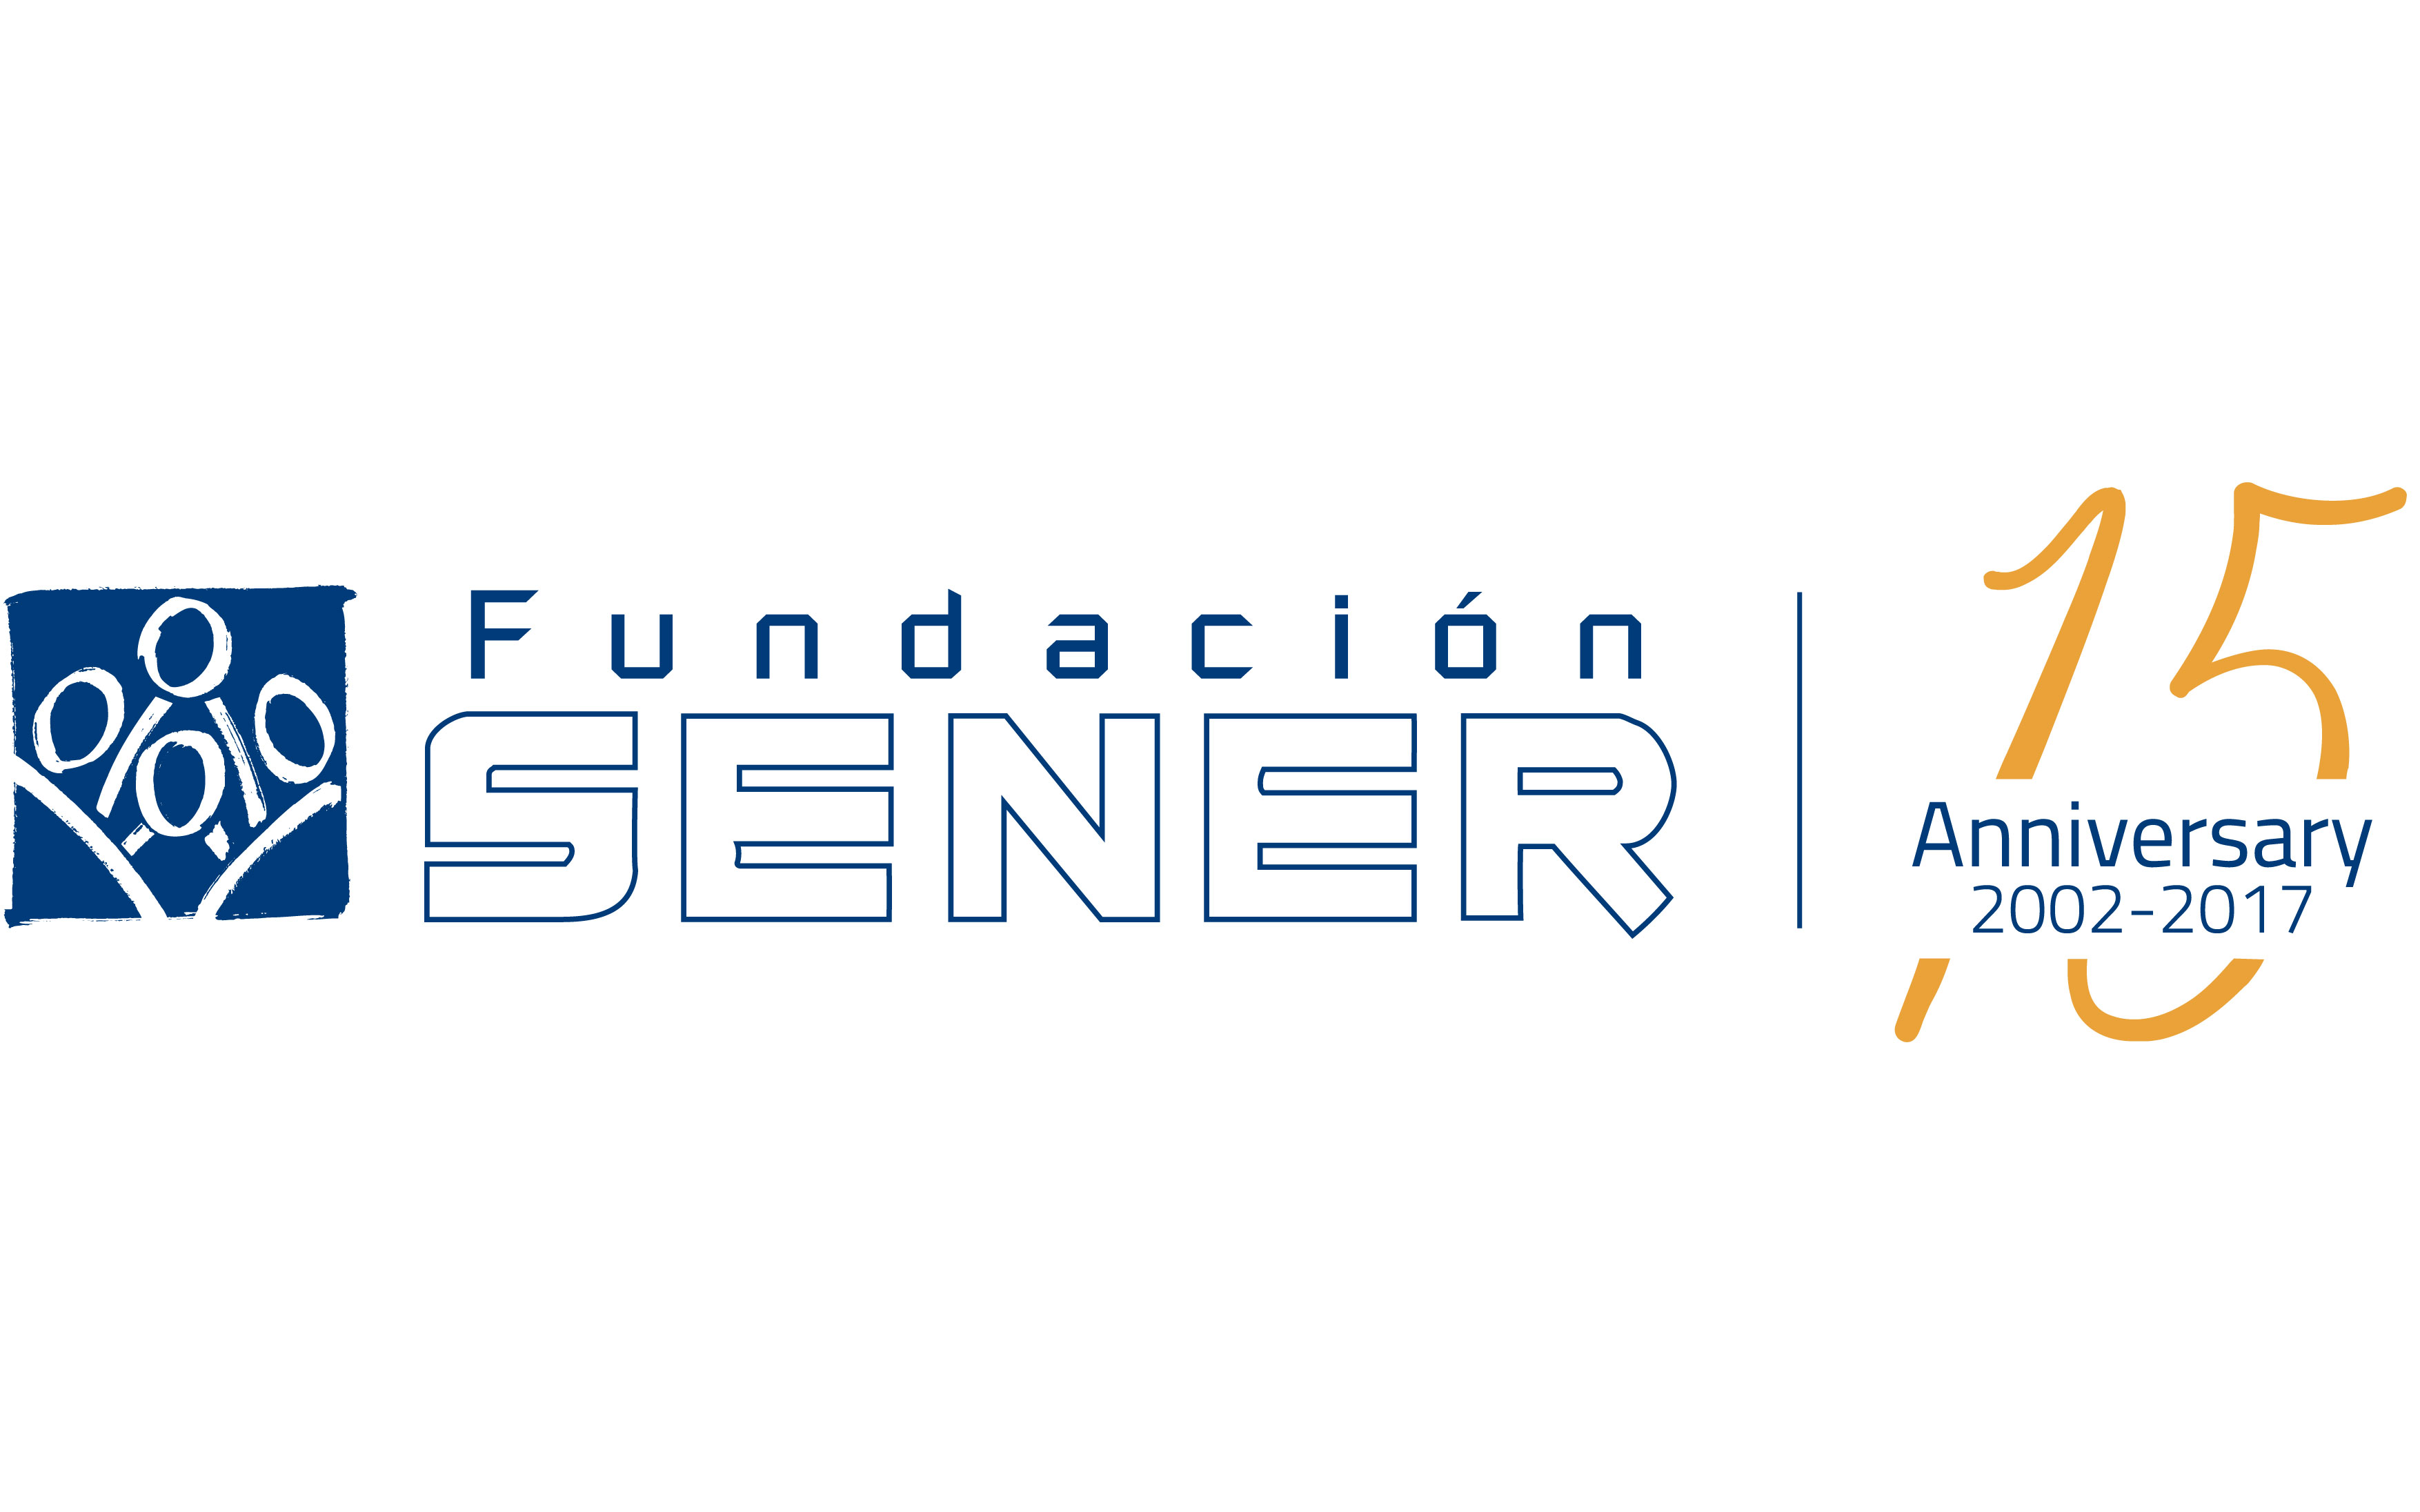 https://www.group.sener/ecm-images/fundacion-sener-15-aniversario-1_replica_replica